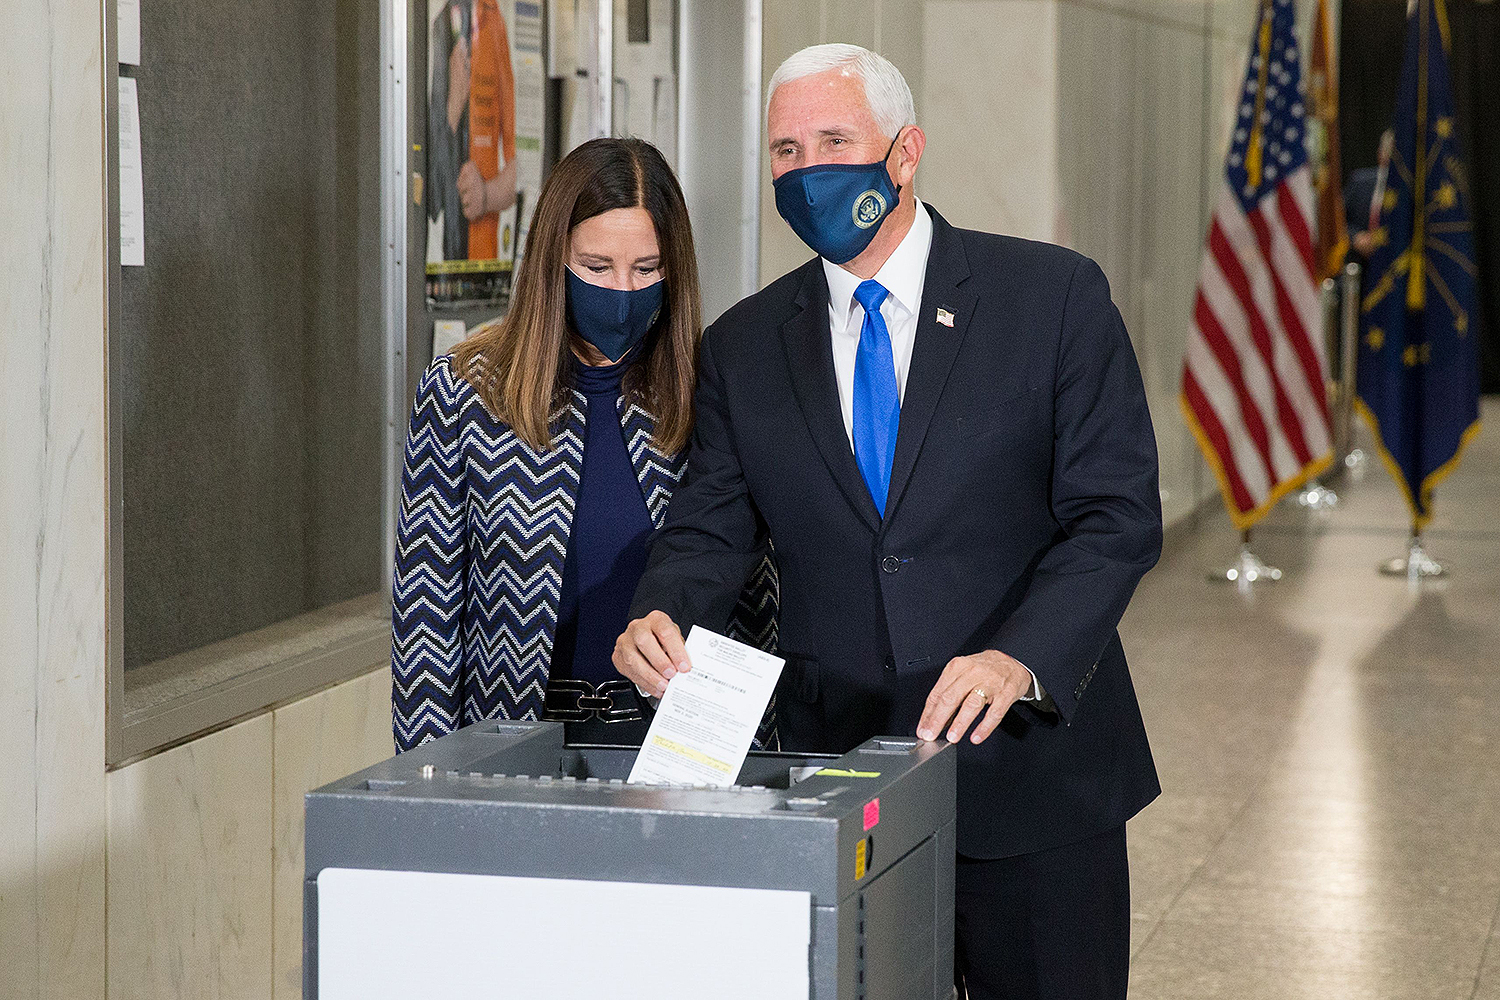 Mike and Karen Pence voting